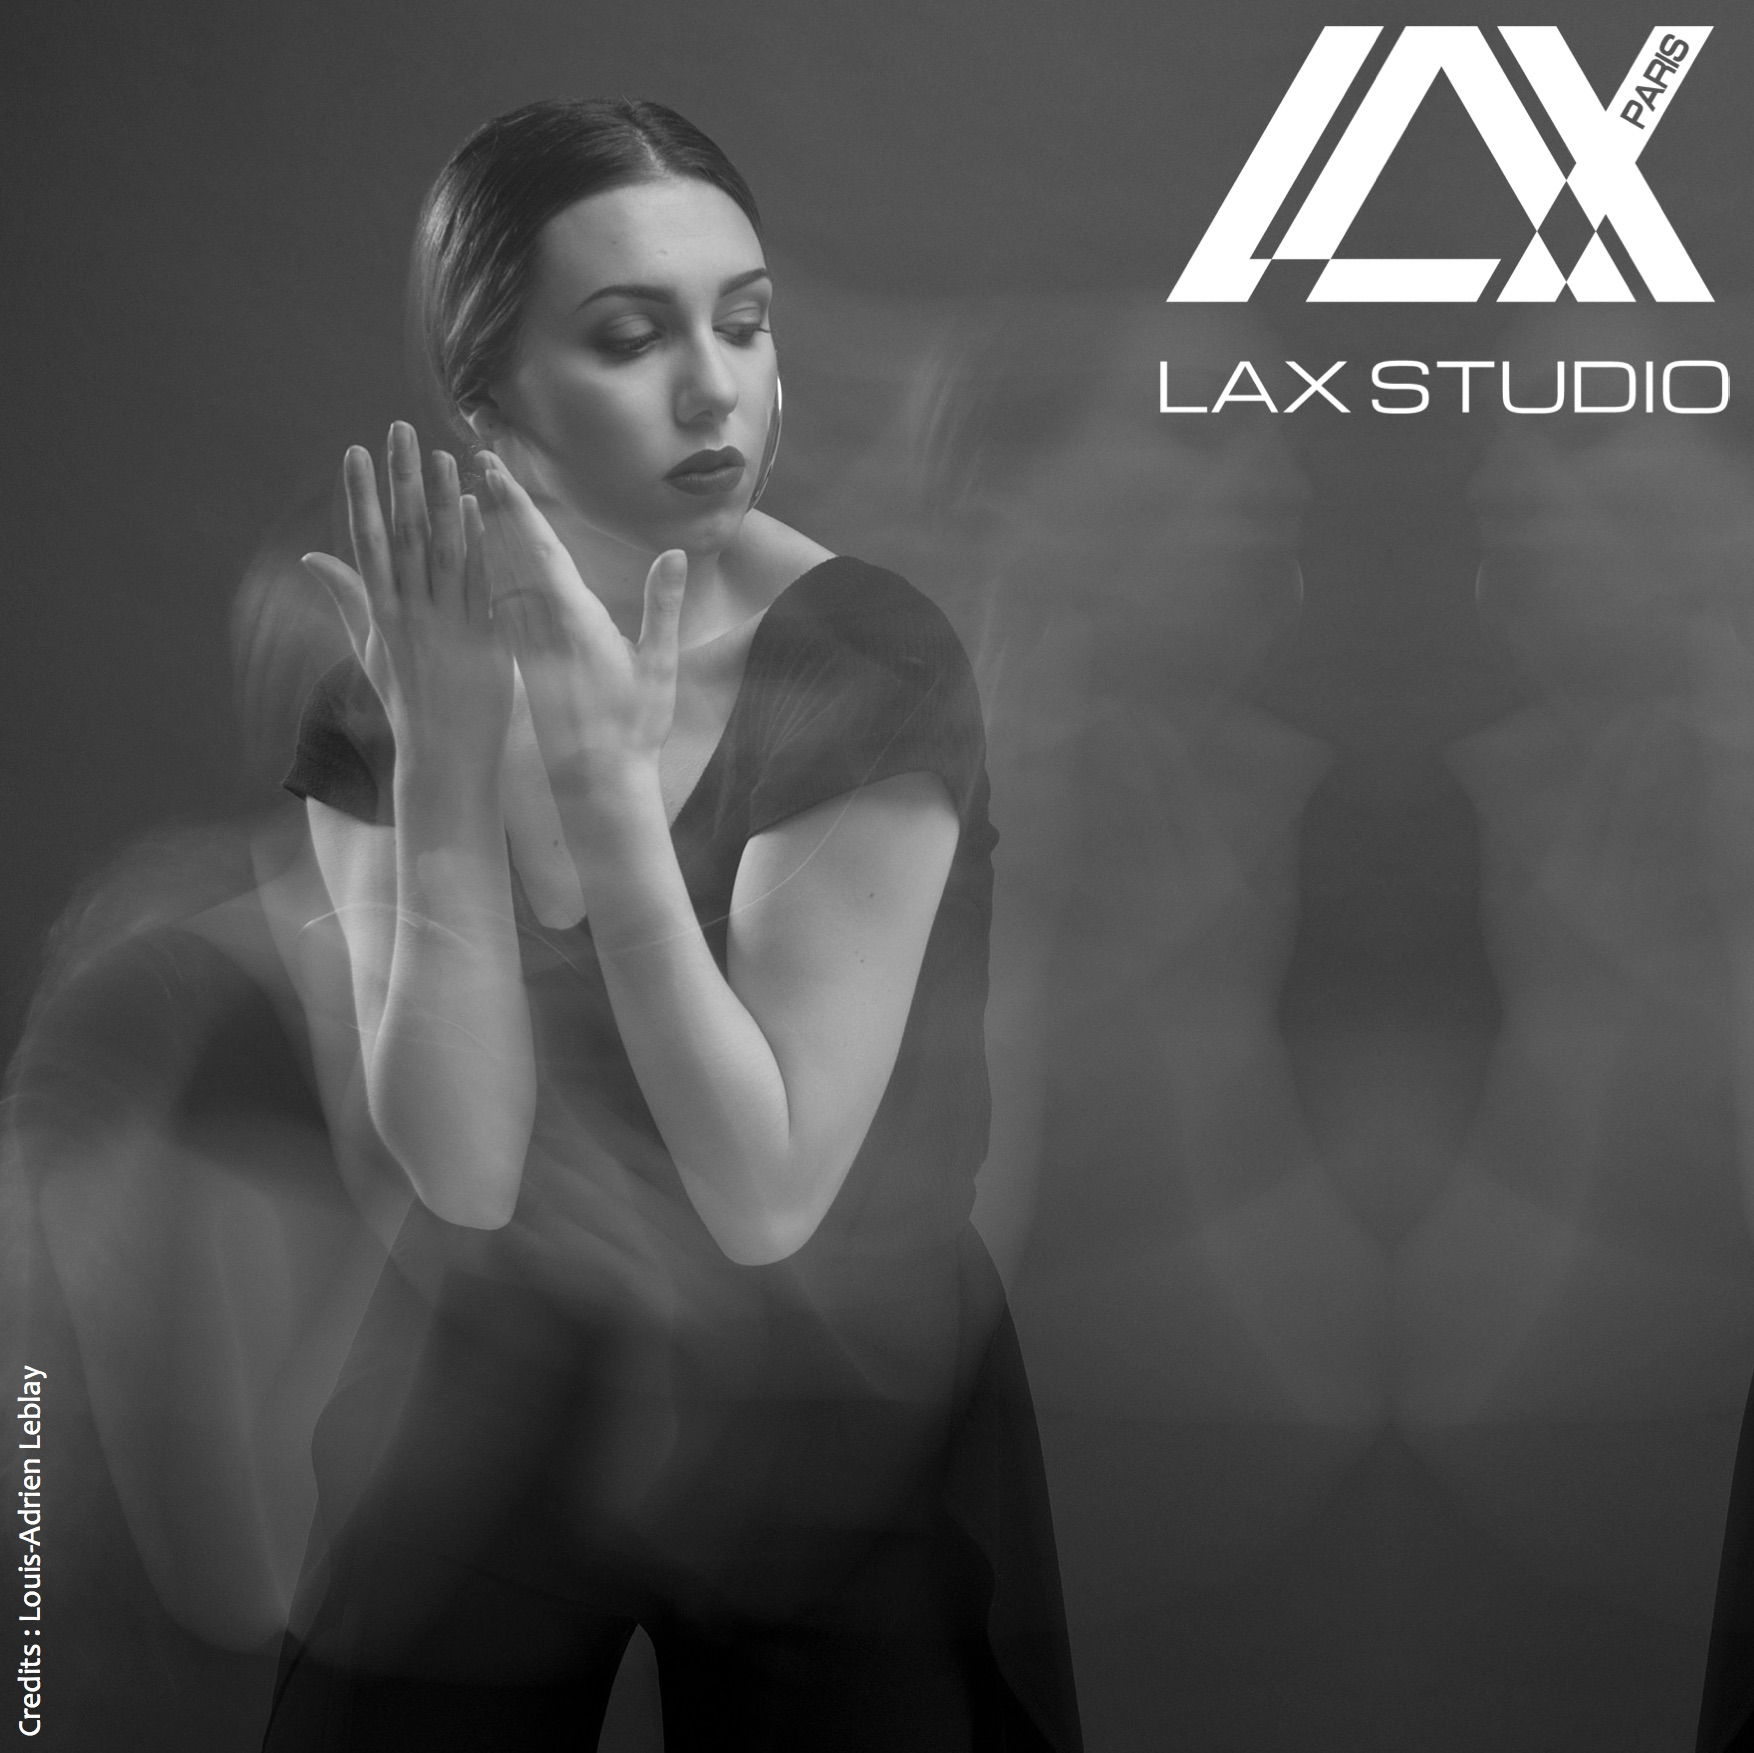 laureen LAX STUDIO experimental feminite danse dance cours école paris ecole school louis adrien leblay photo